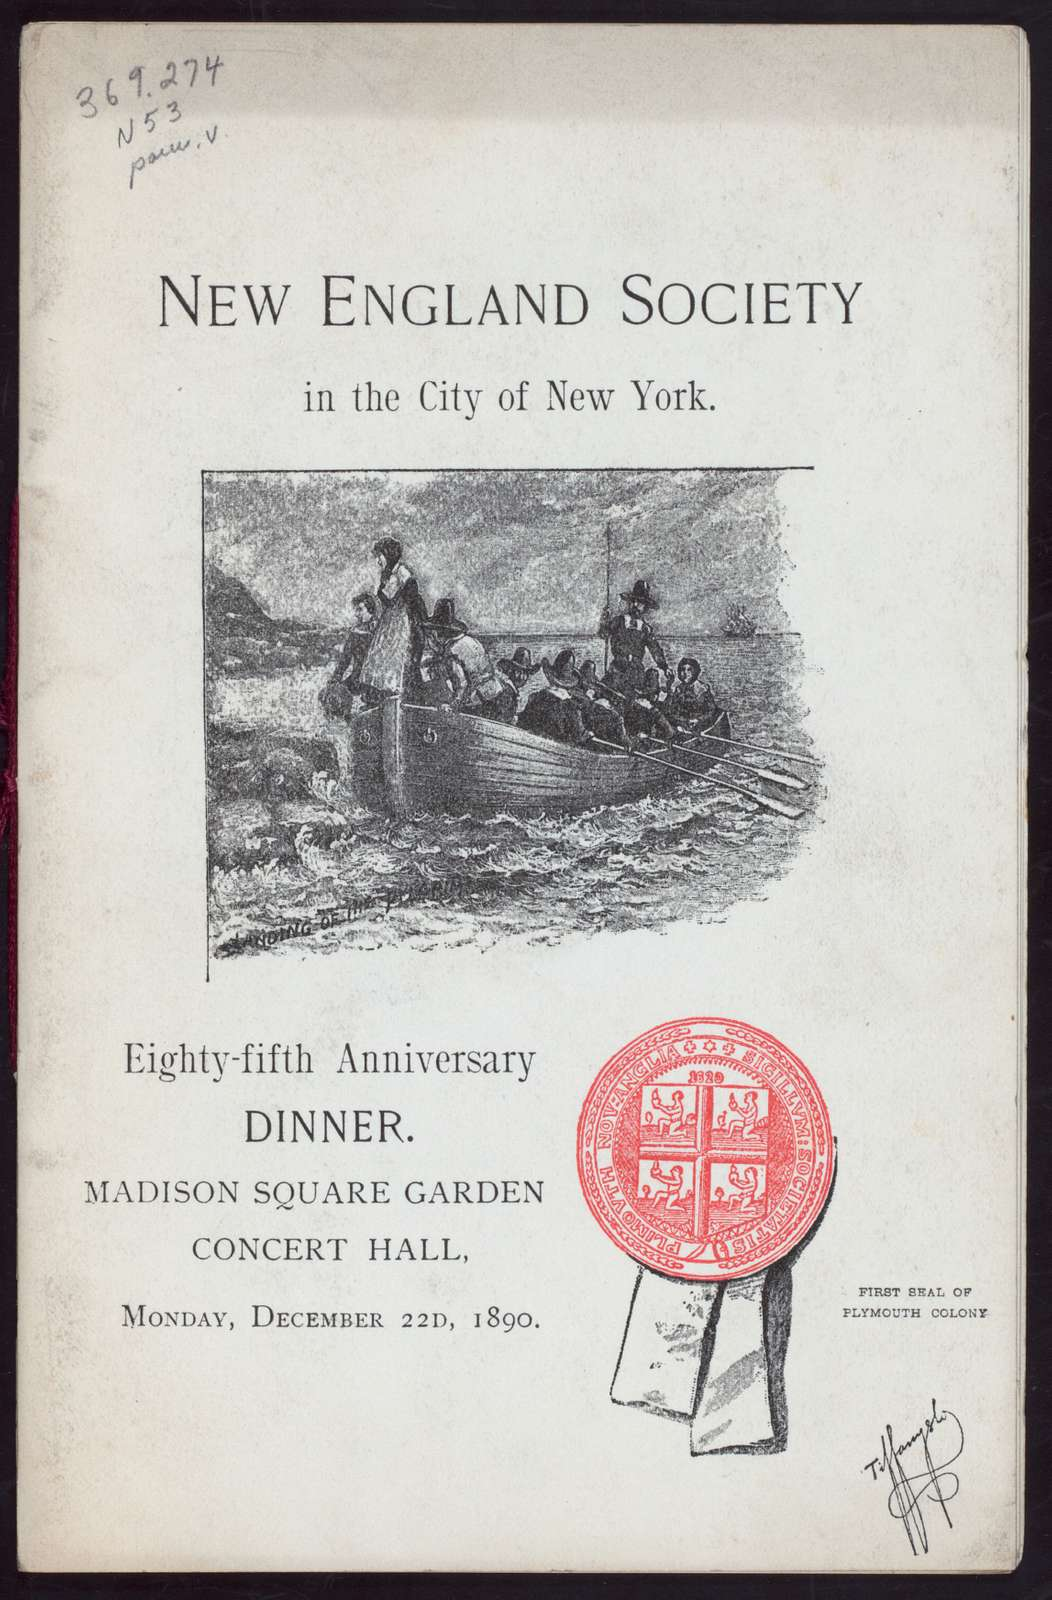 """EIGHTY-FIFTH ANNIVERSARY DINNER [held by] NEW ENGLAND SOCIETY IN THE CITY OF NEW YORK [at] """"MADISON SQUARE GARDEN CONCERT HALL, (NY)"""" (CONCERT HALL)"""